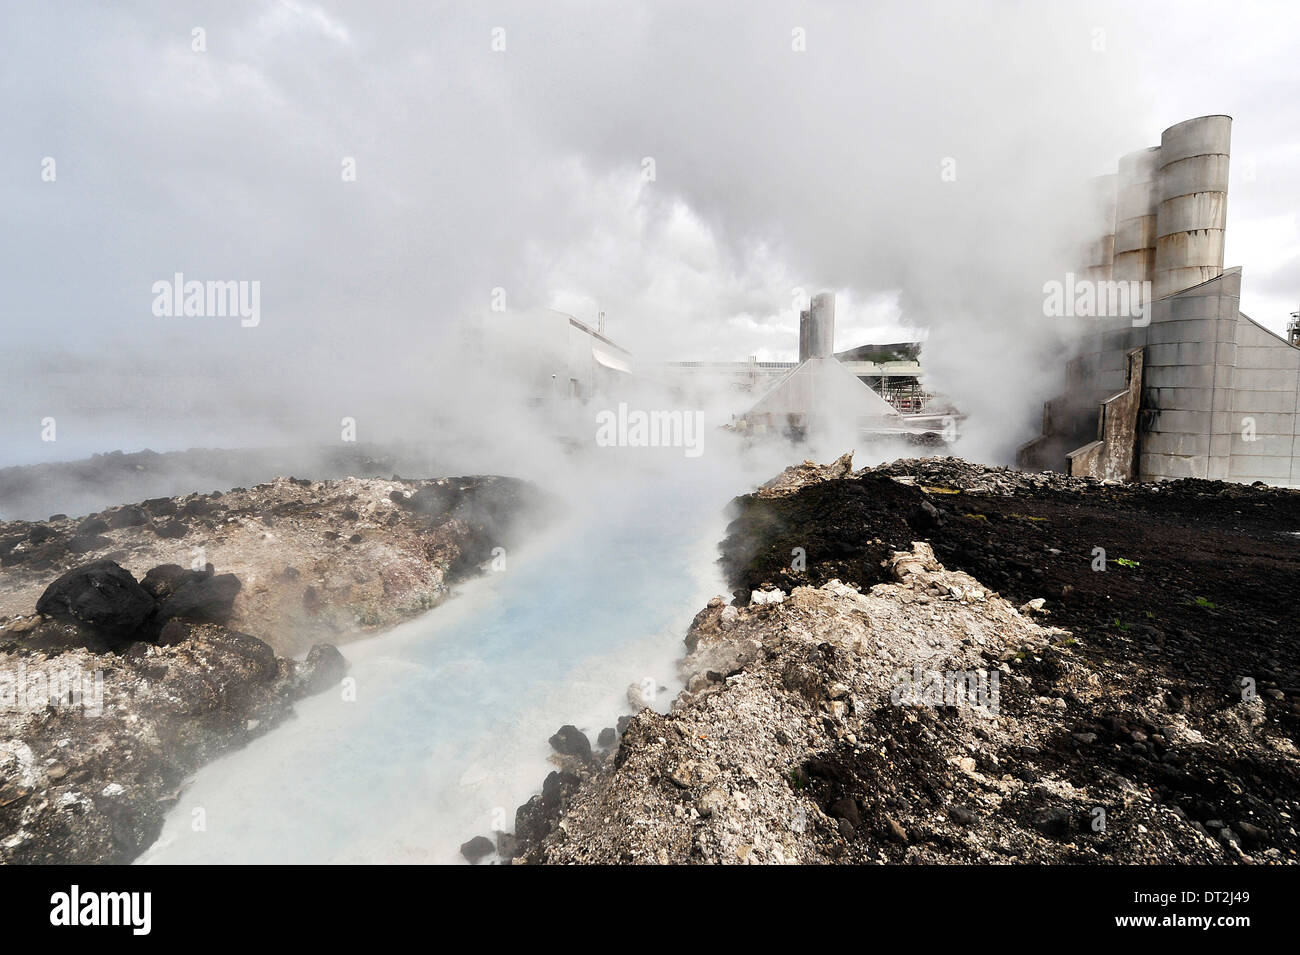 Iceland, Blue Lagoon Area, Geothermic Factories, Rivulets of hot water - Stock Image